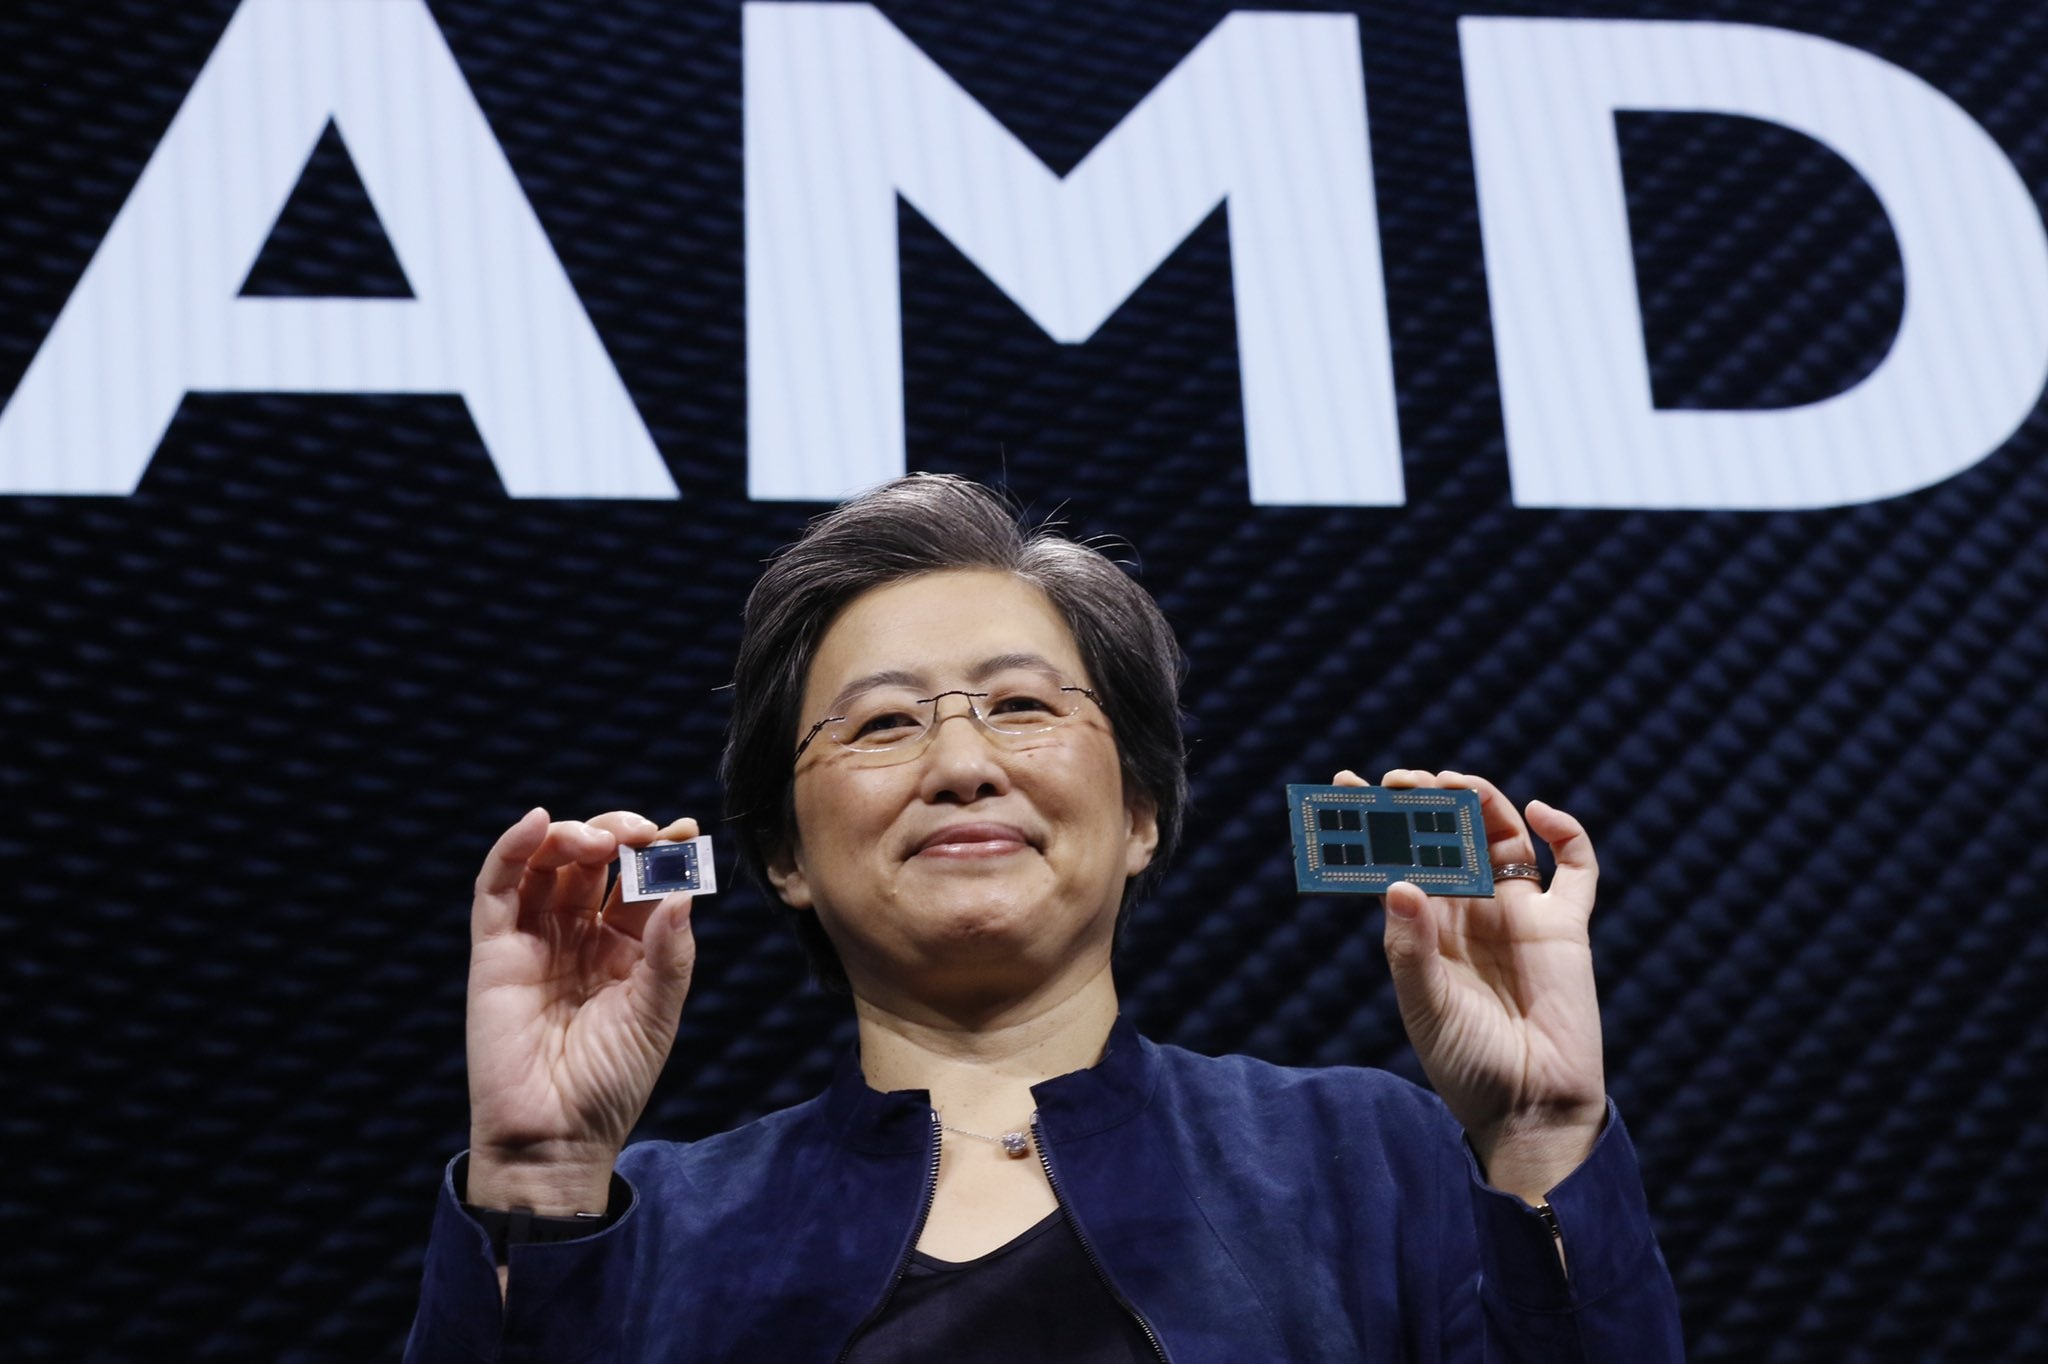 Amd Ryzen 4000 Zen 3 Cpus Radeon Rx Navi 2x Gpus Launch Expected In October 2020